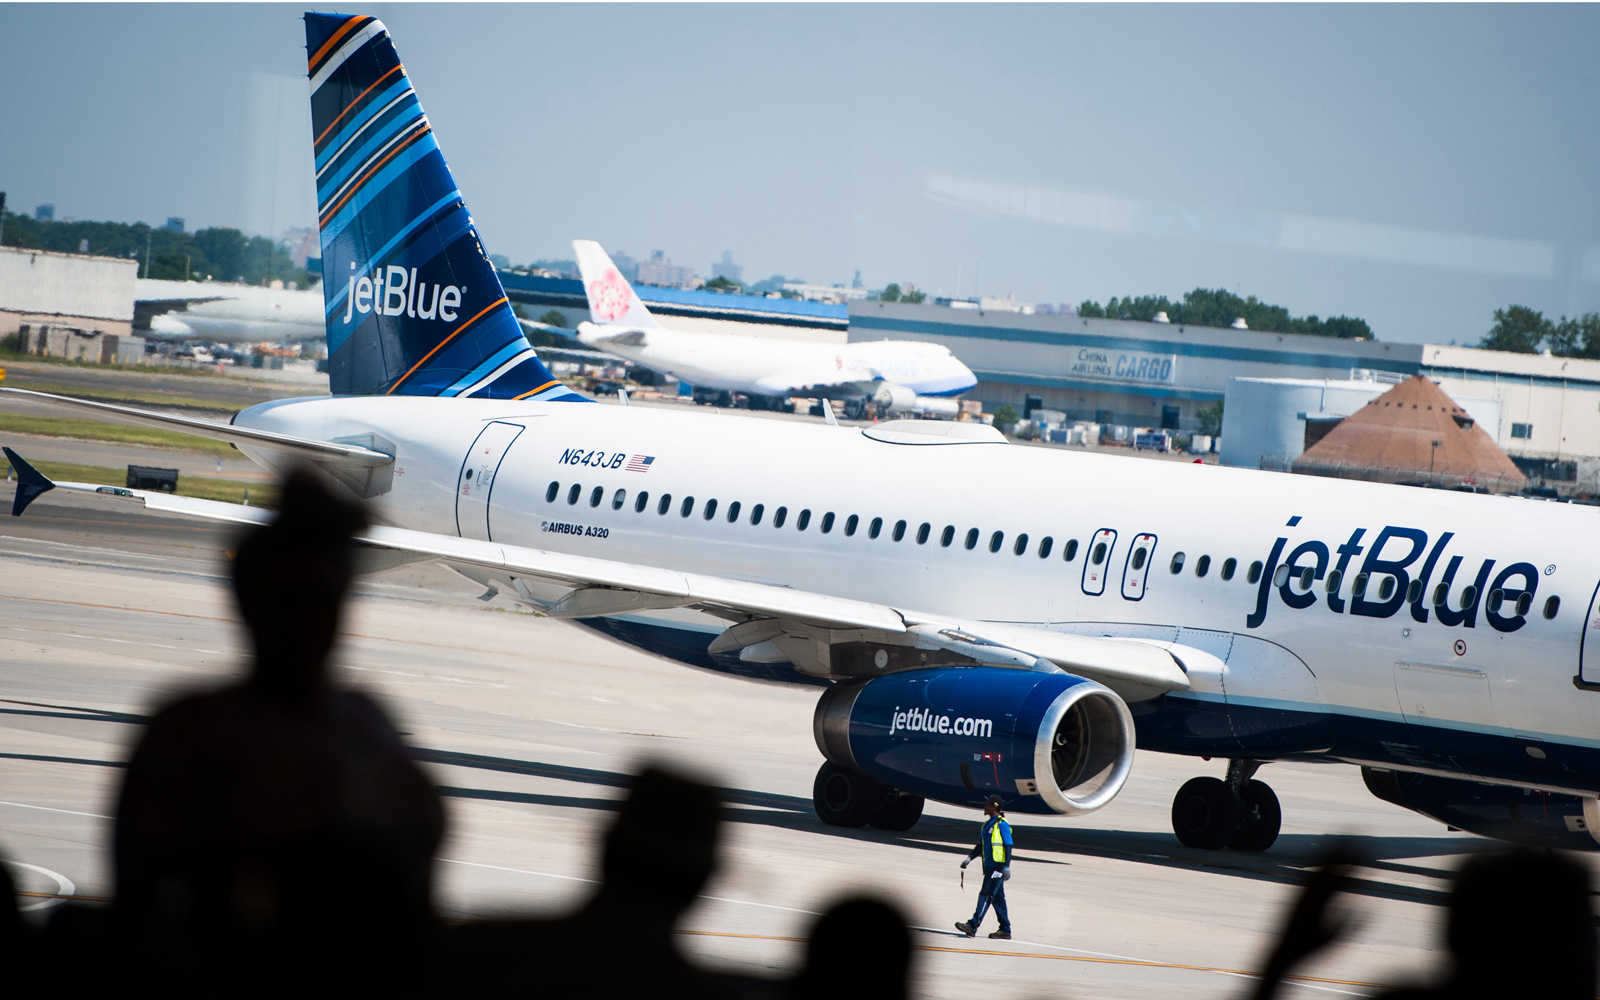 Passengers Are Suing Jetblue for Injuries From Severe Turbulence